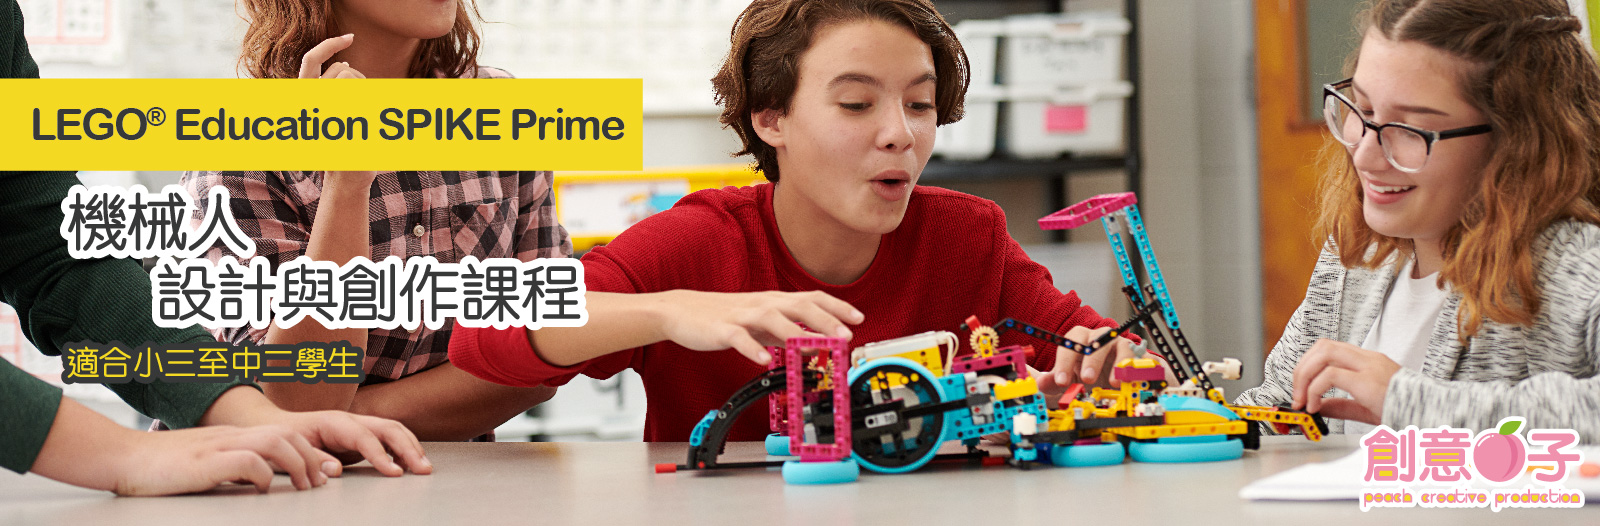 lego_Course_banner_spike_L